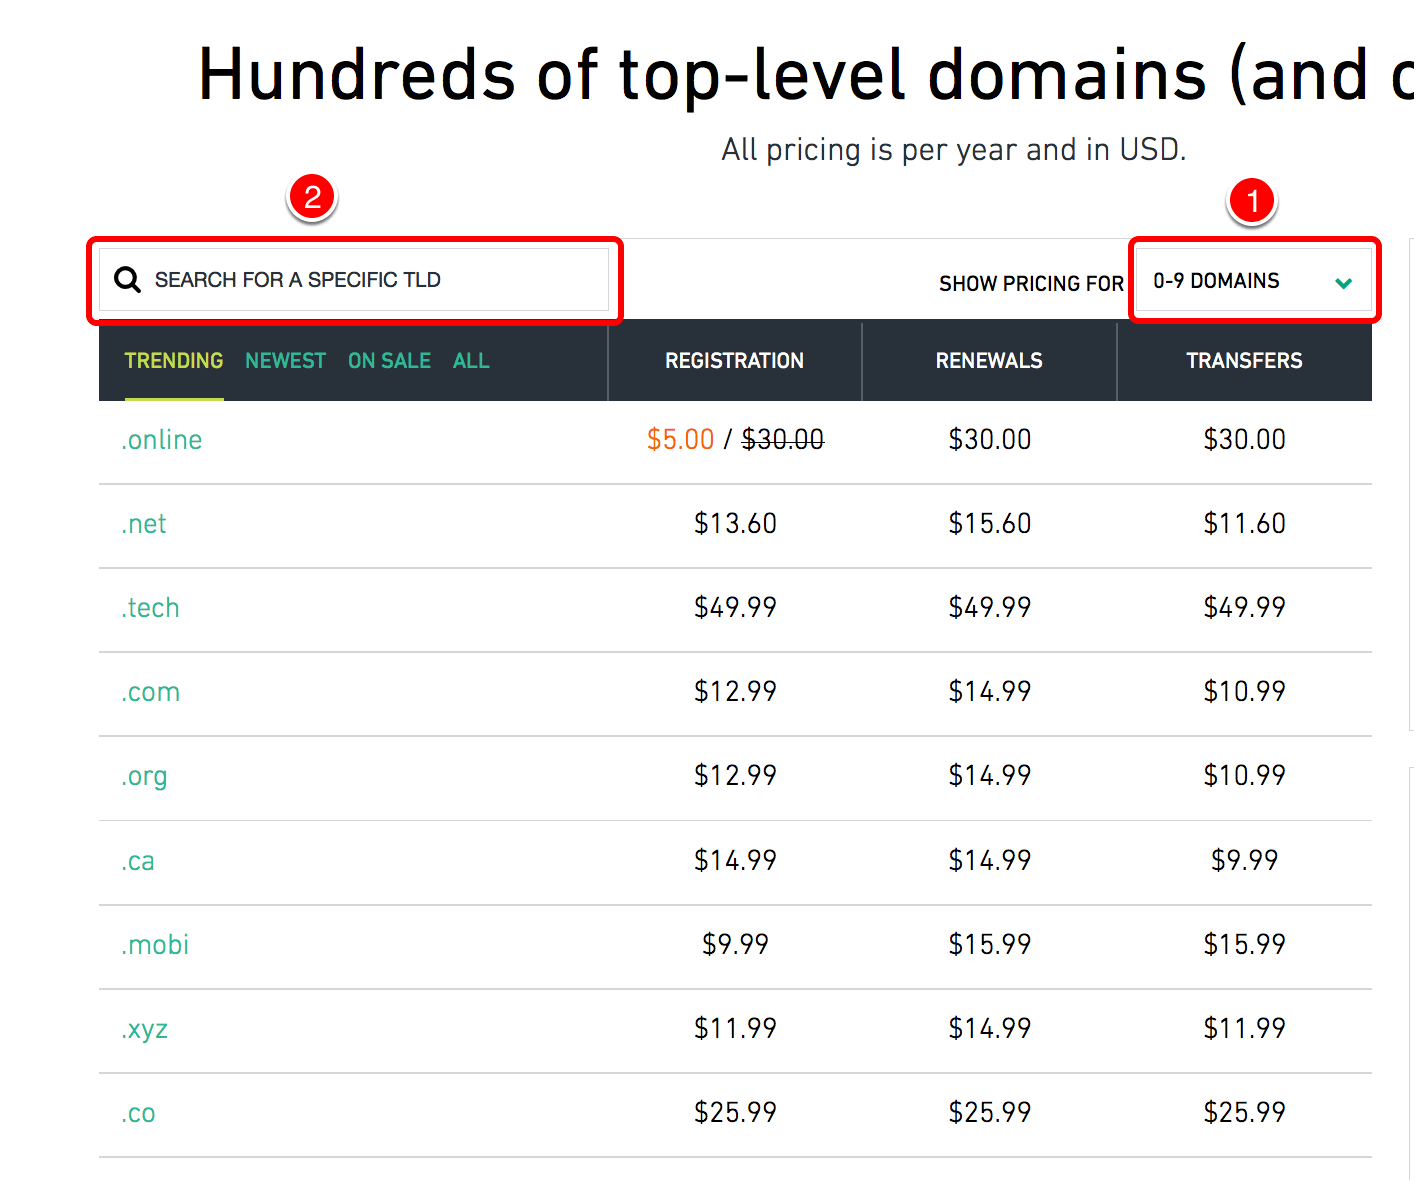 Why don't we take a look at https://www.hover.com/domain_pricing ?